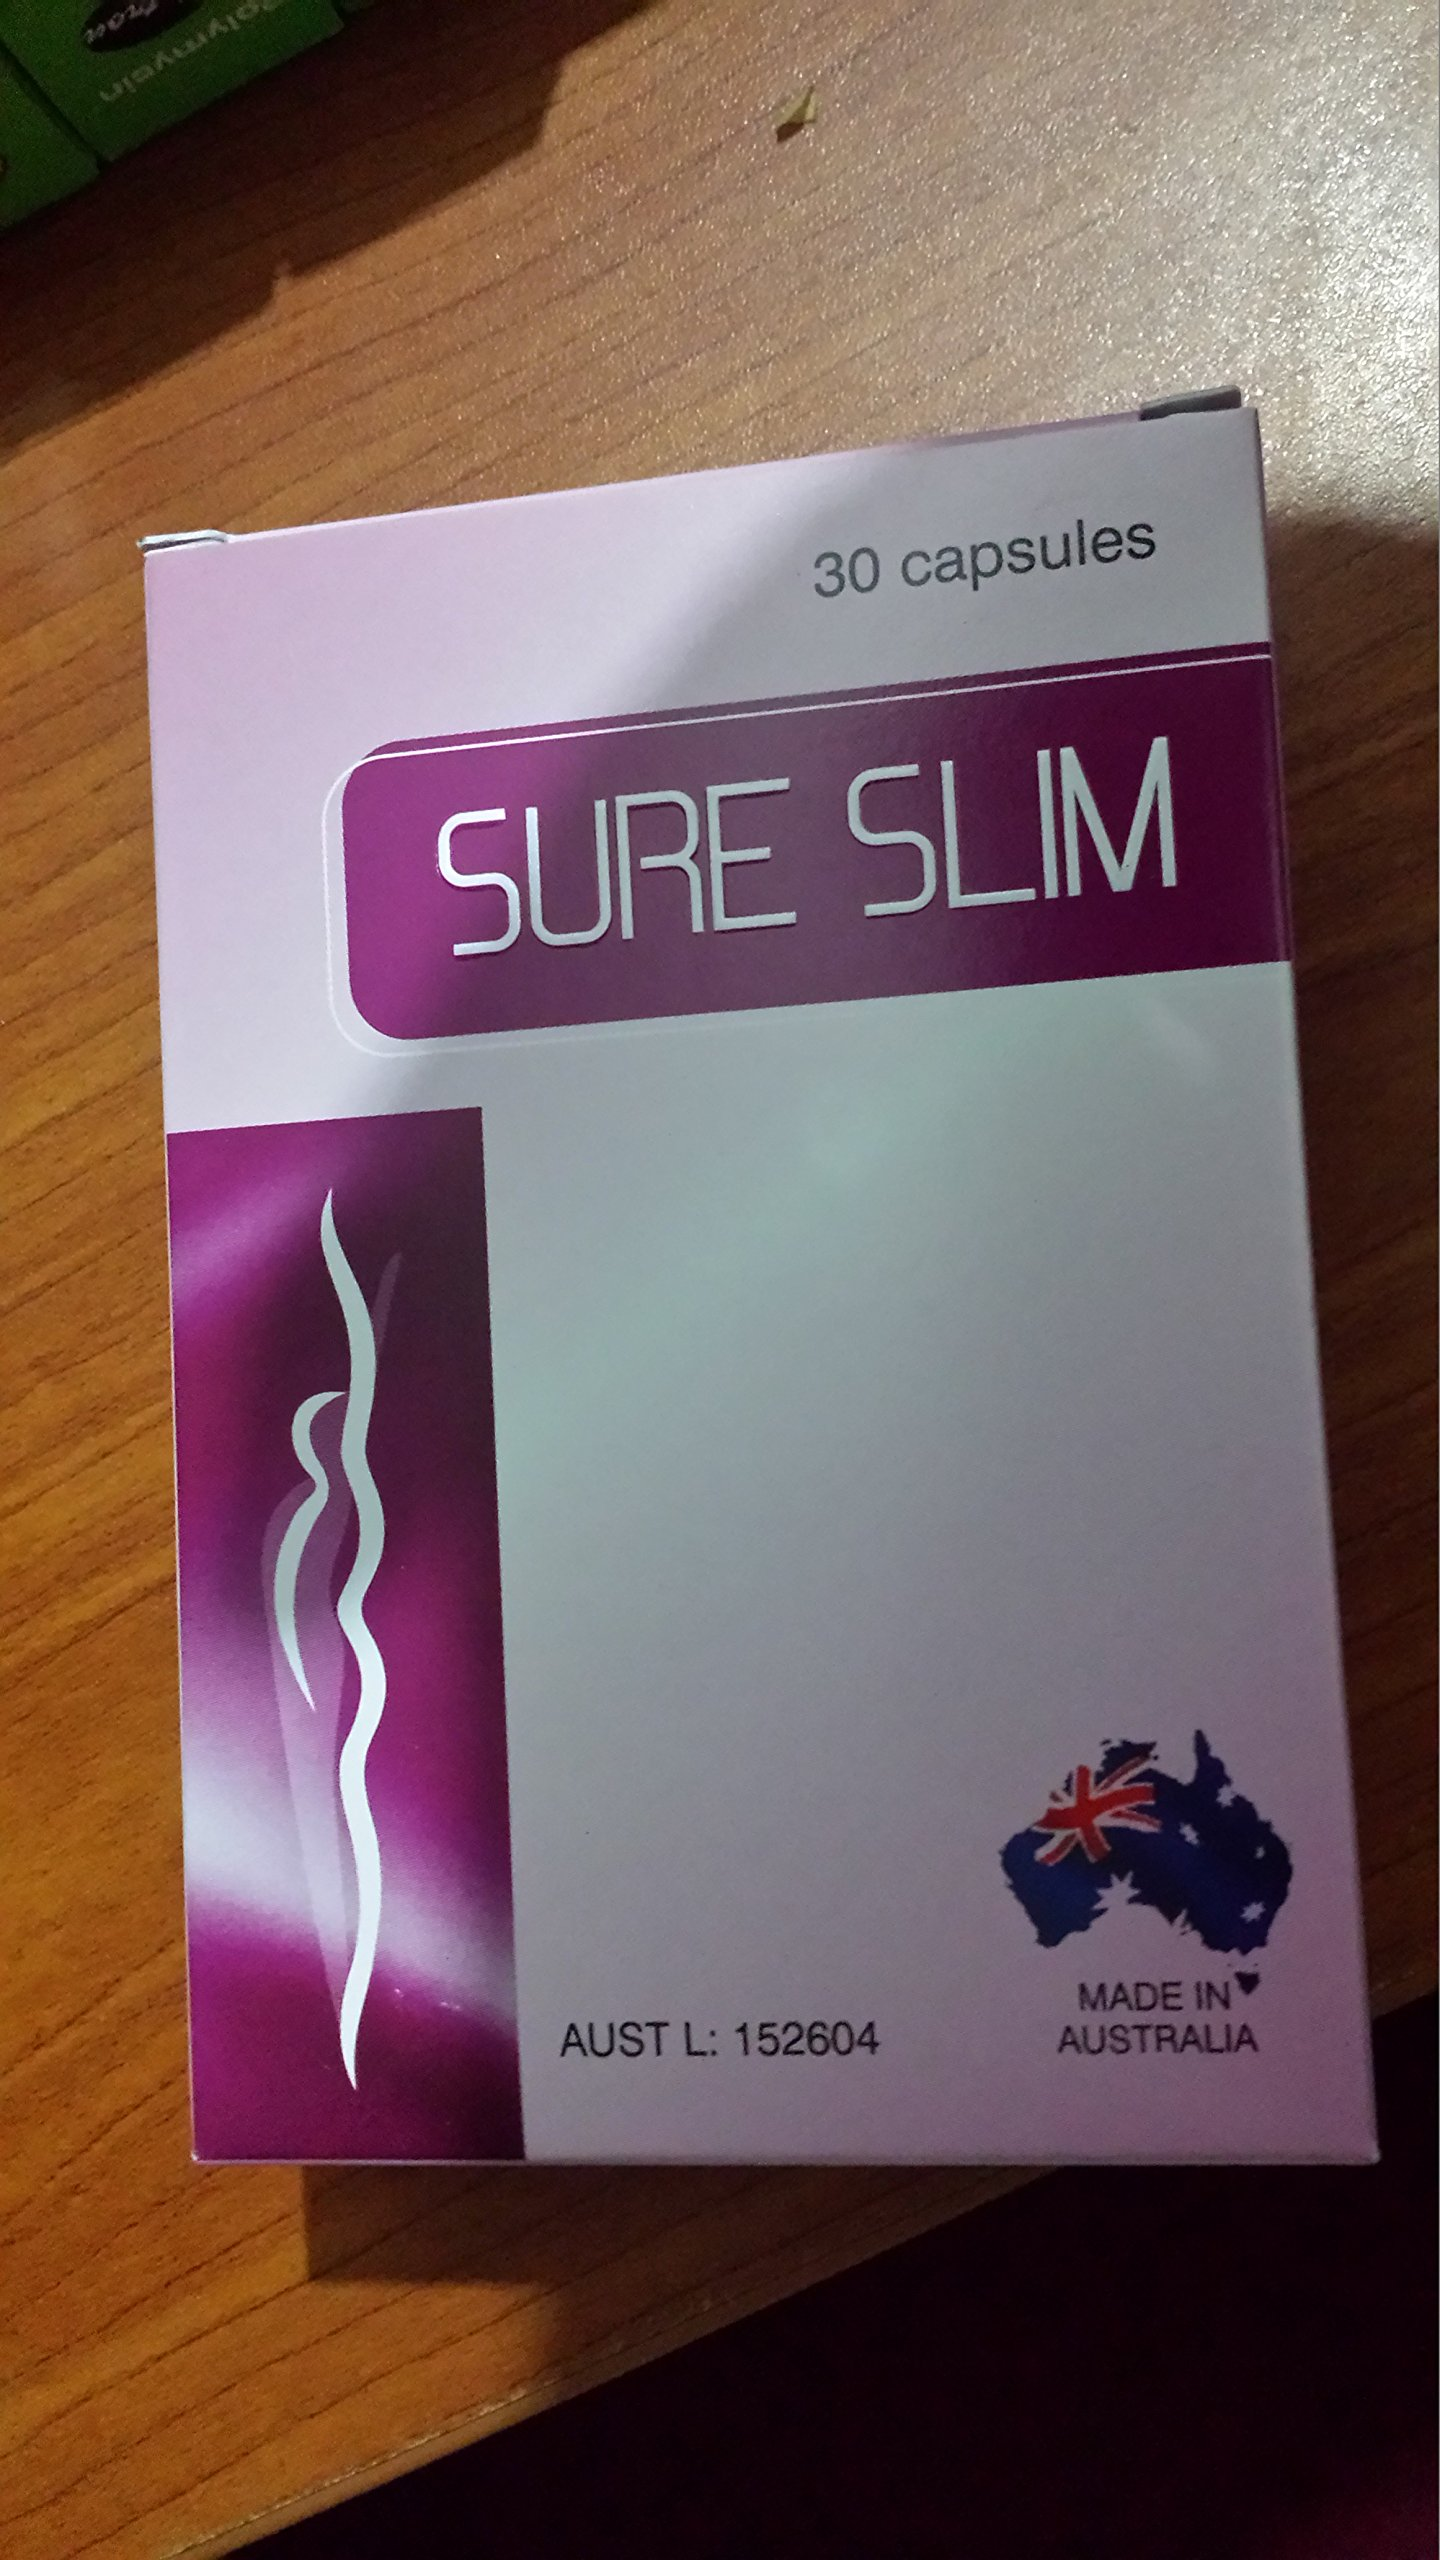 SURE SLIM blocking carbohydrate absorption from the diet by ✔ A+ grade product from Registered Australian (Image #1)